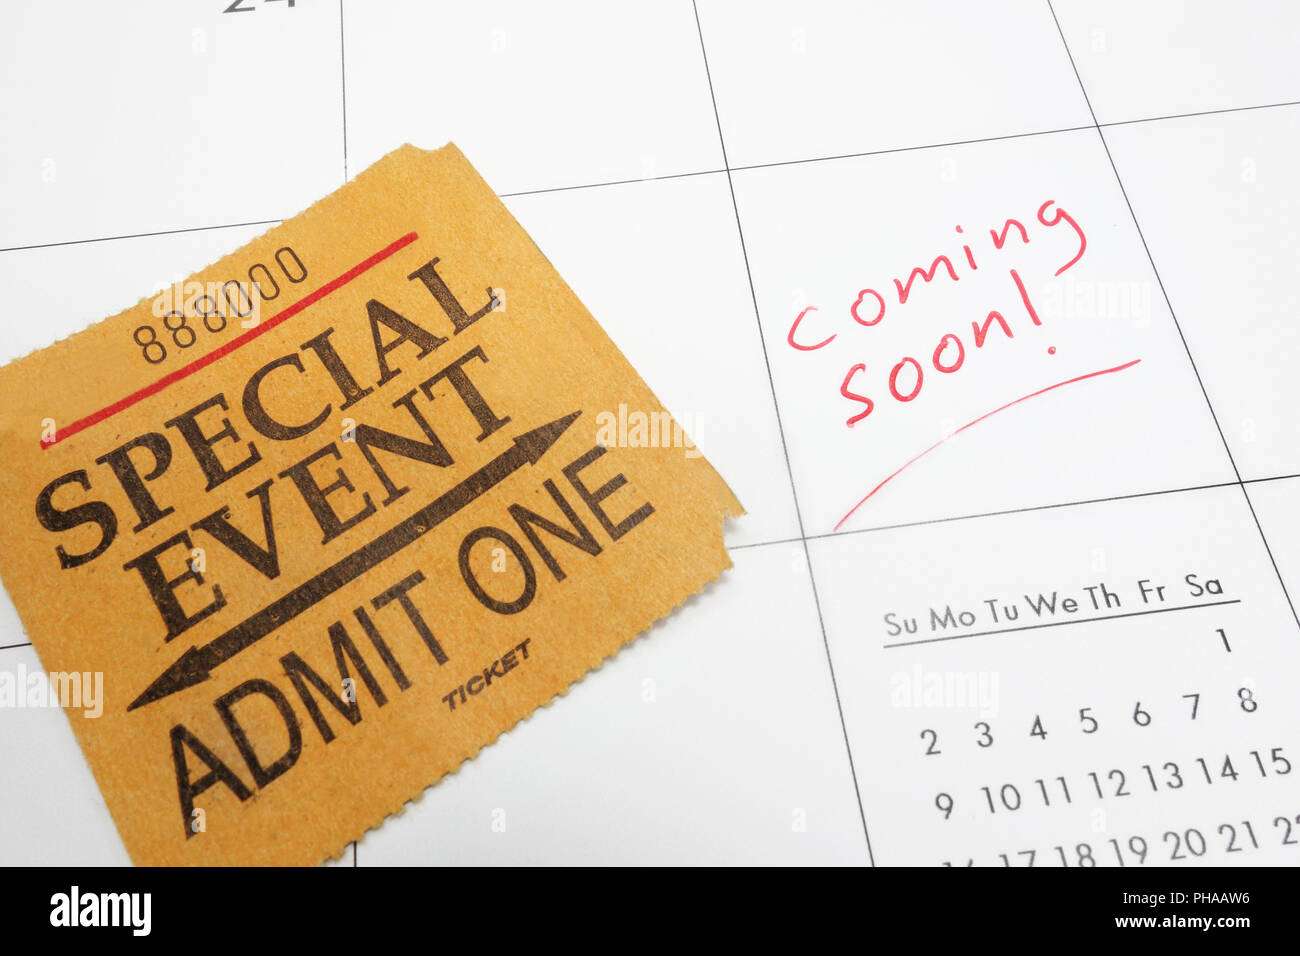 coming soon ticket - Stock Image